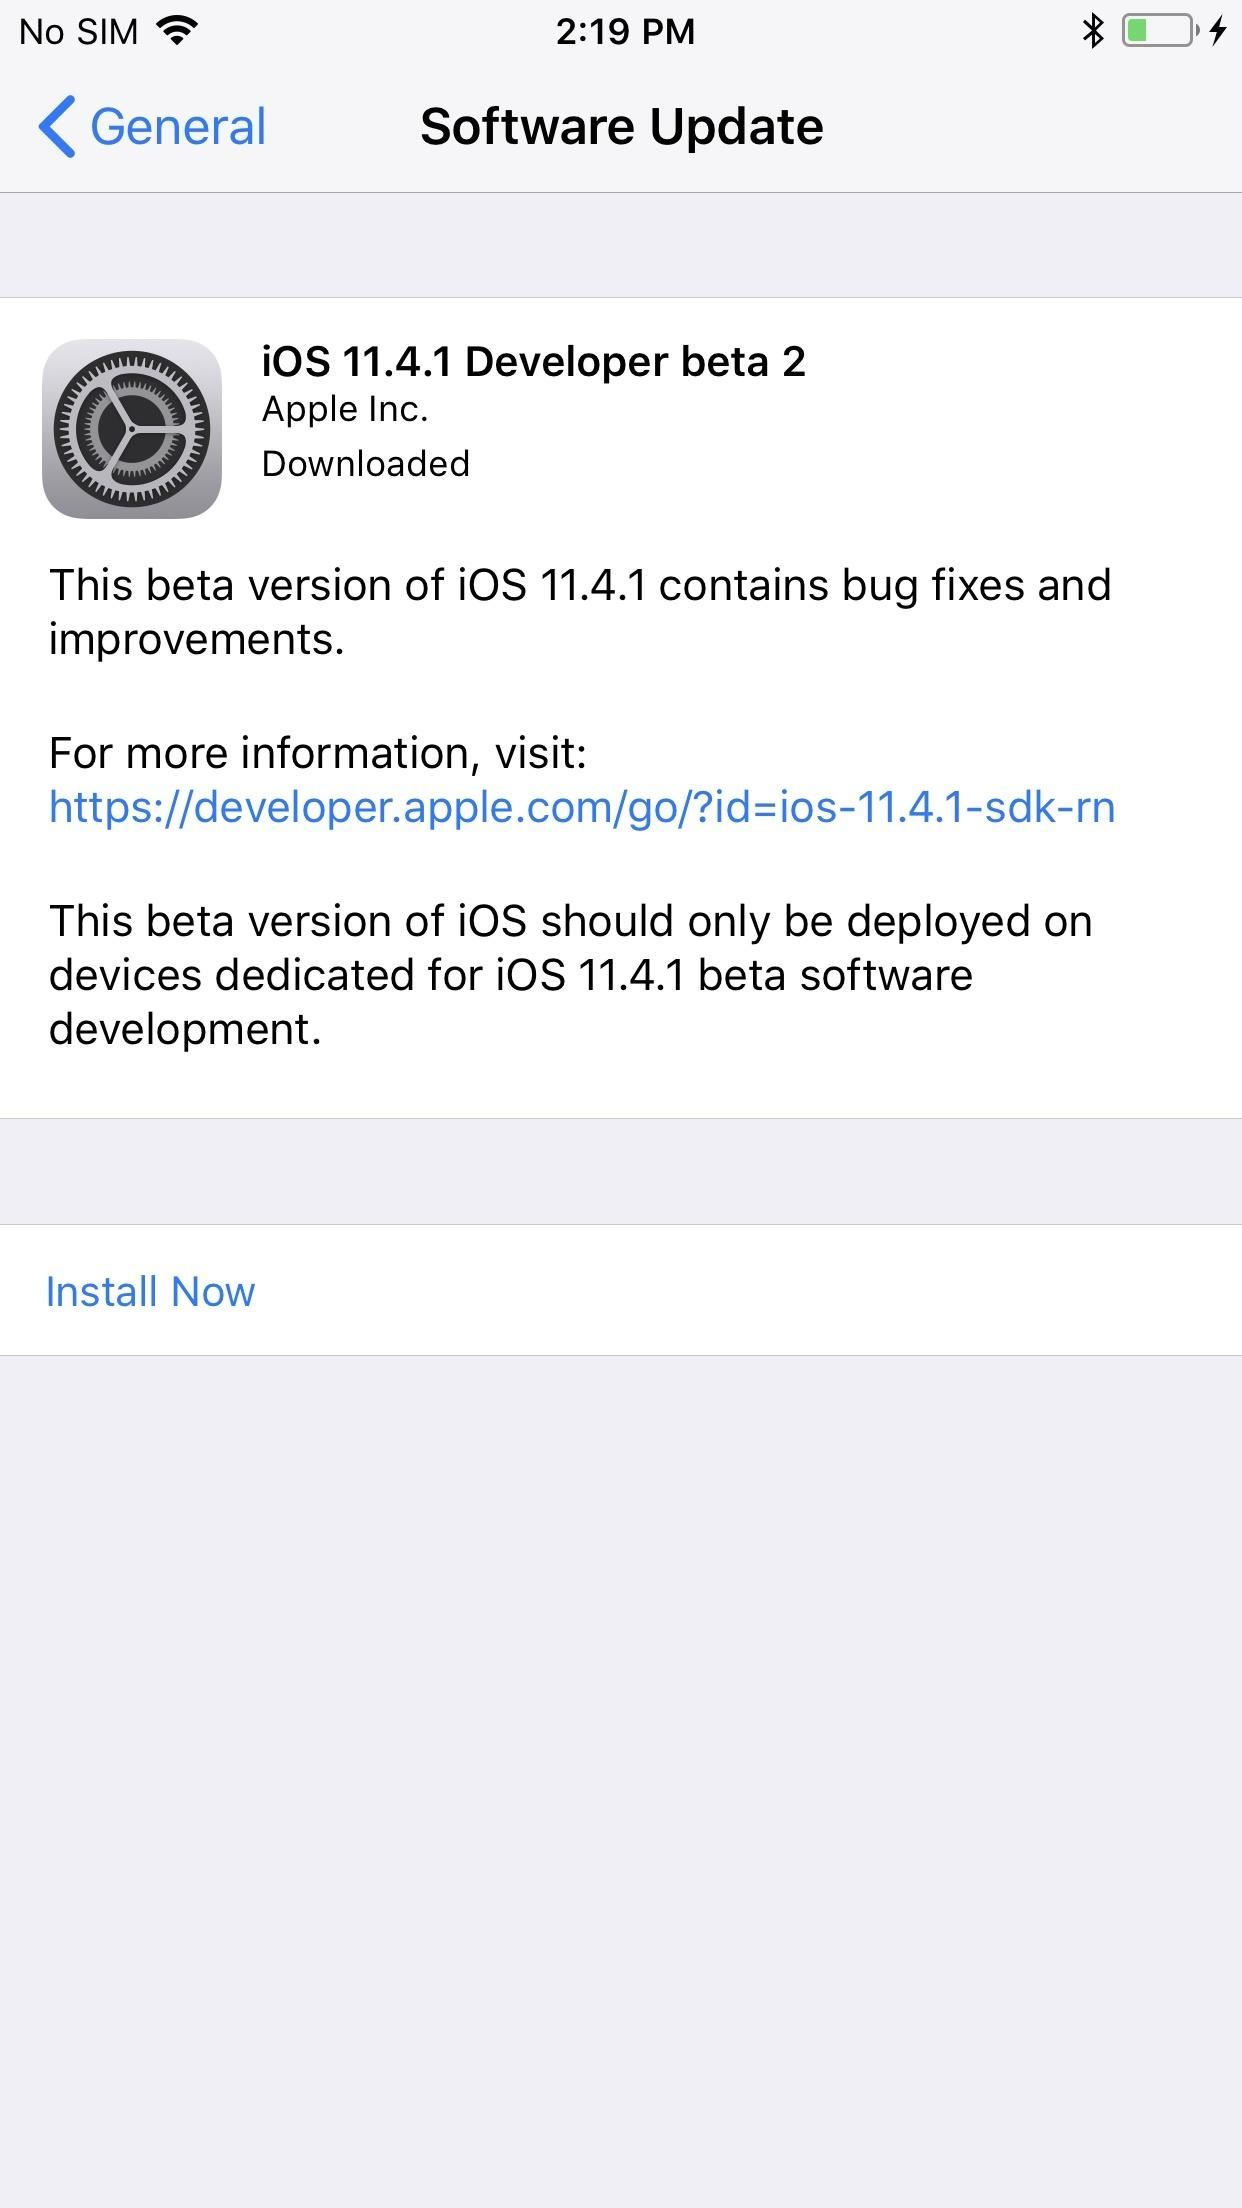 iOS 11.4.1 beta 2 released for iPhones without real bug fixes or improvements